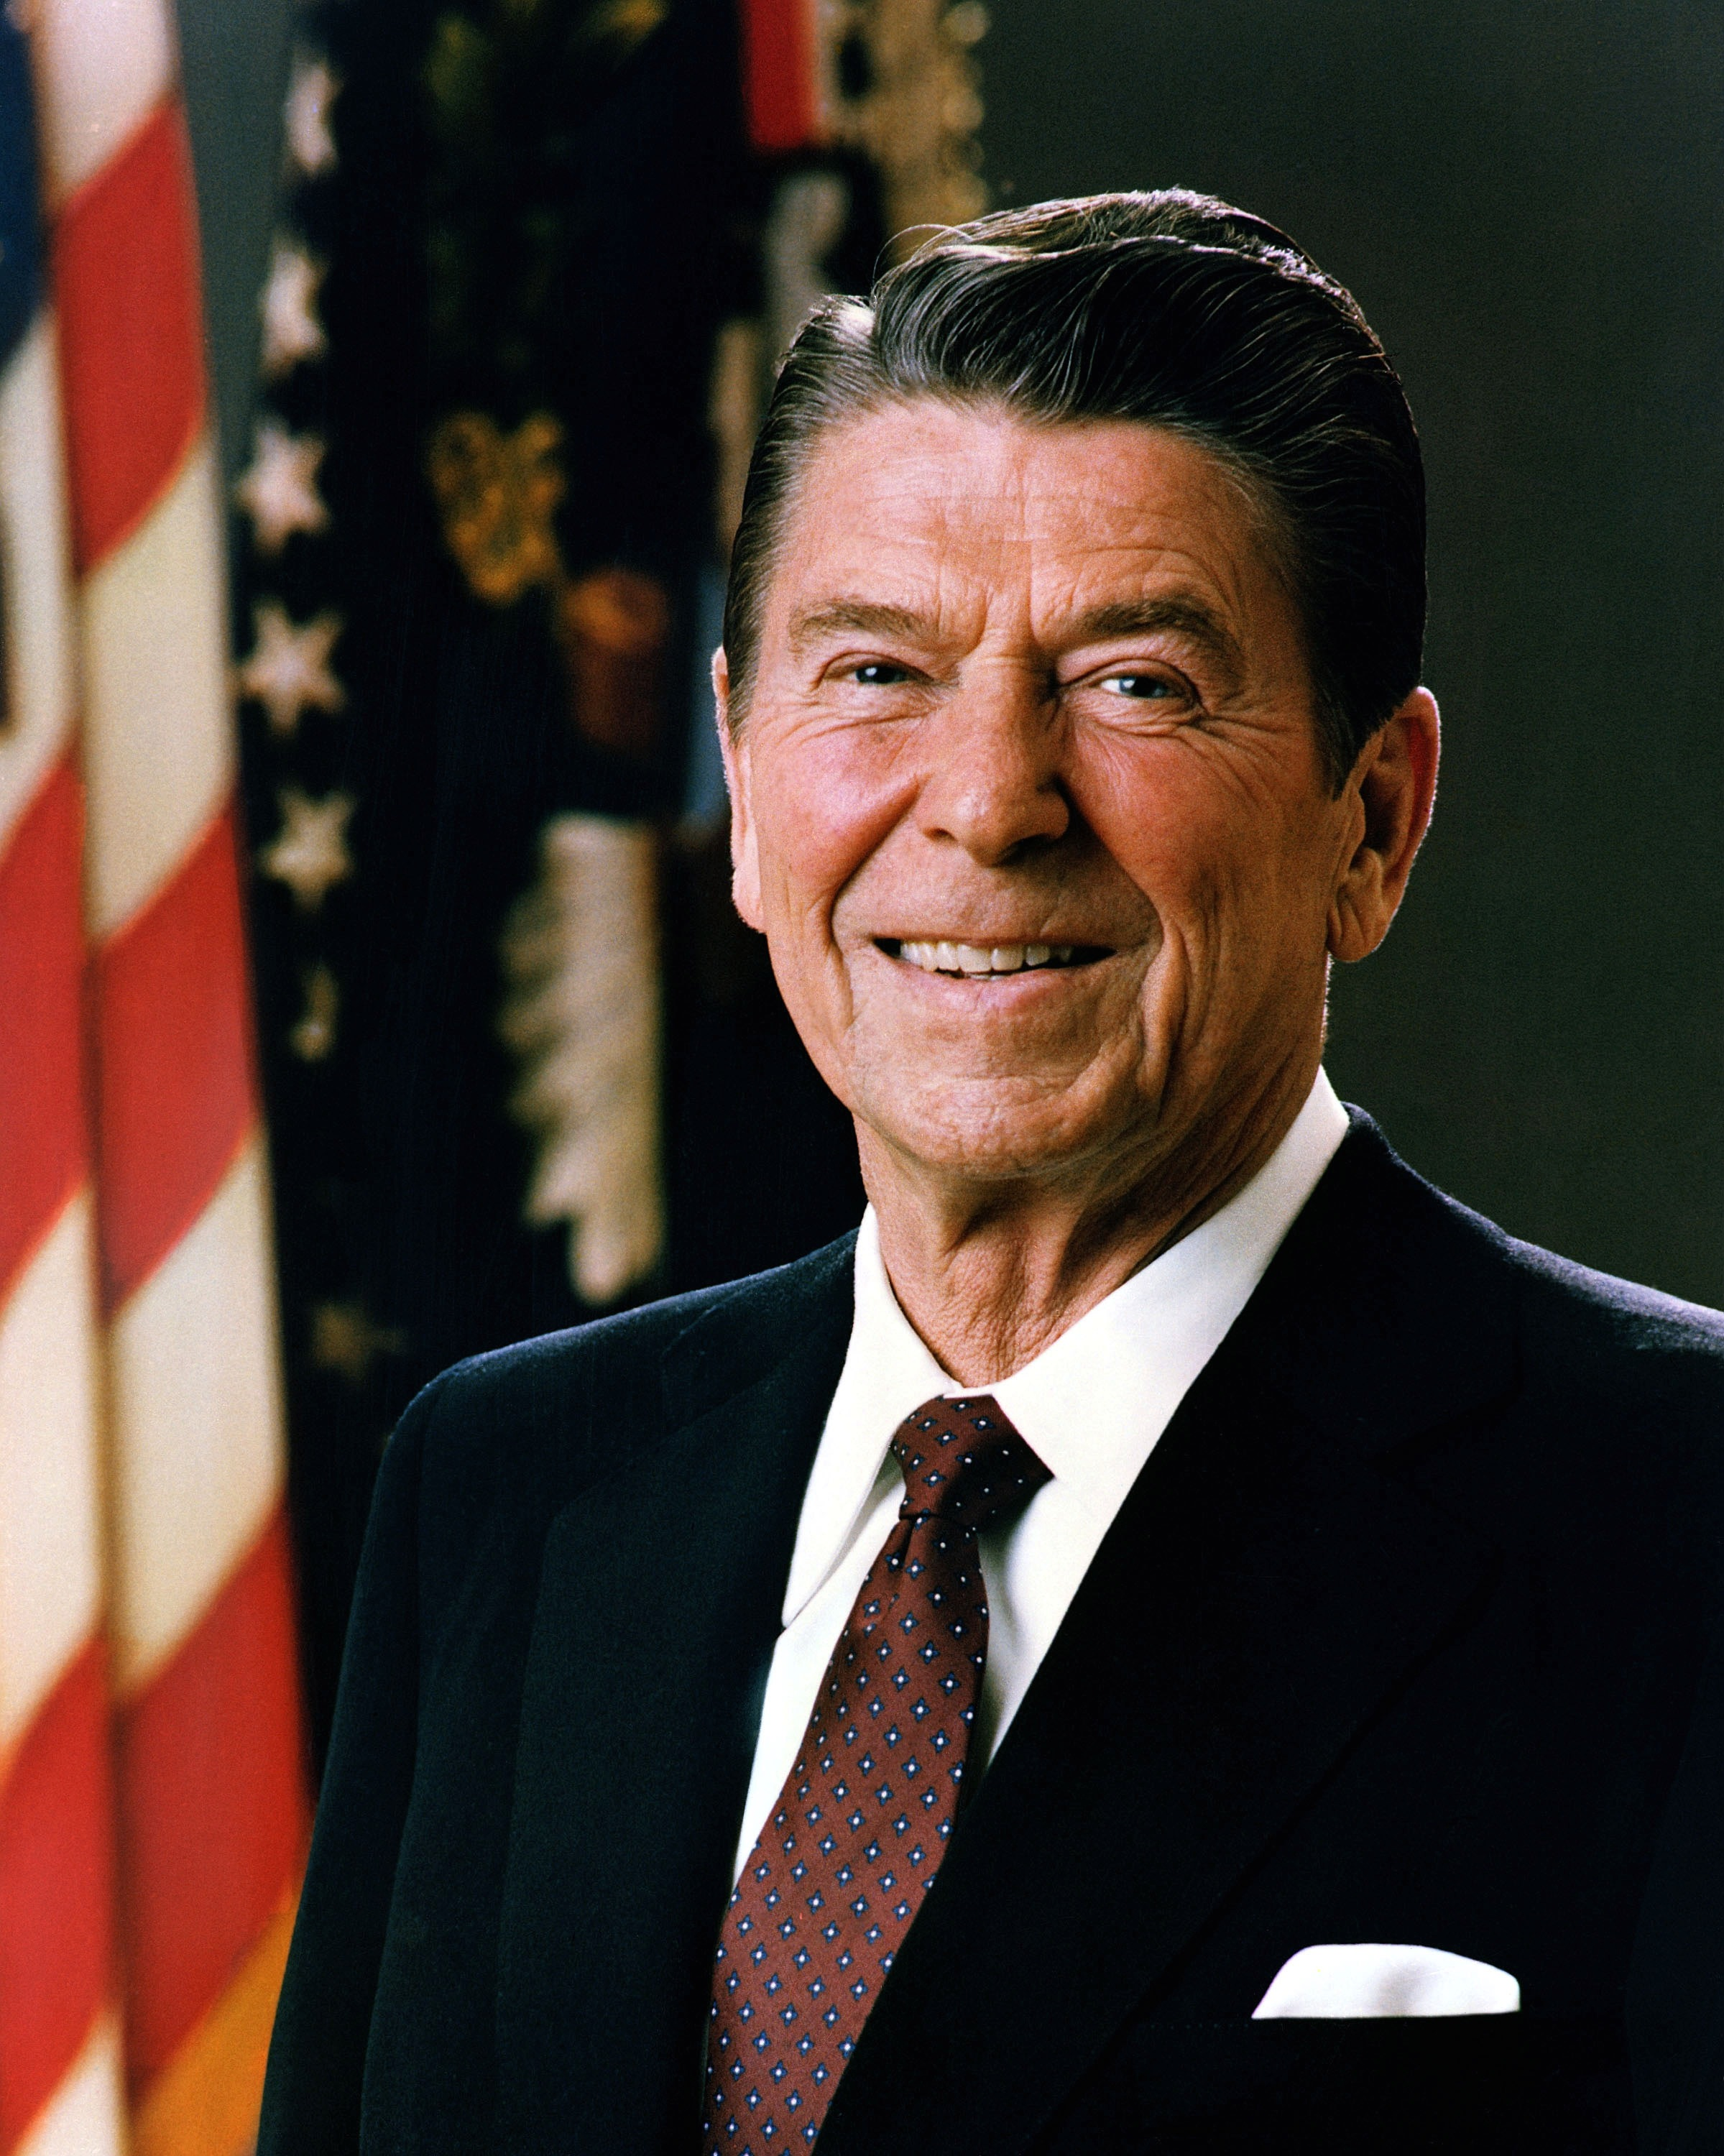 Ronald-Reagan-This-is-the-President.jpeg